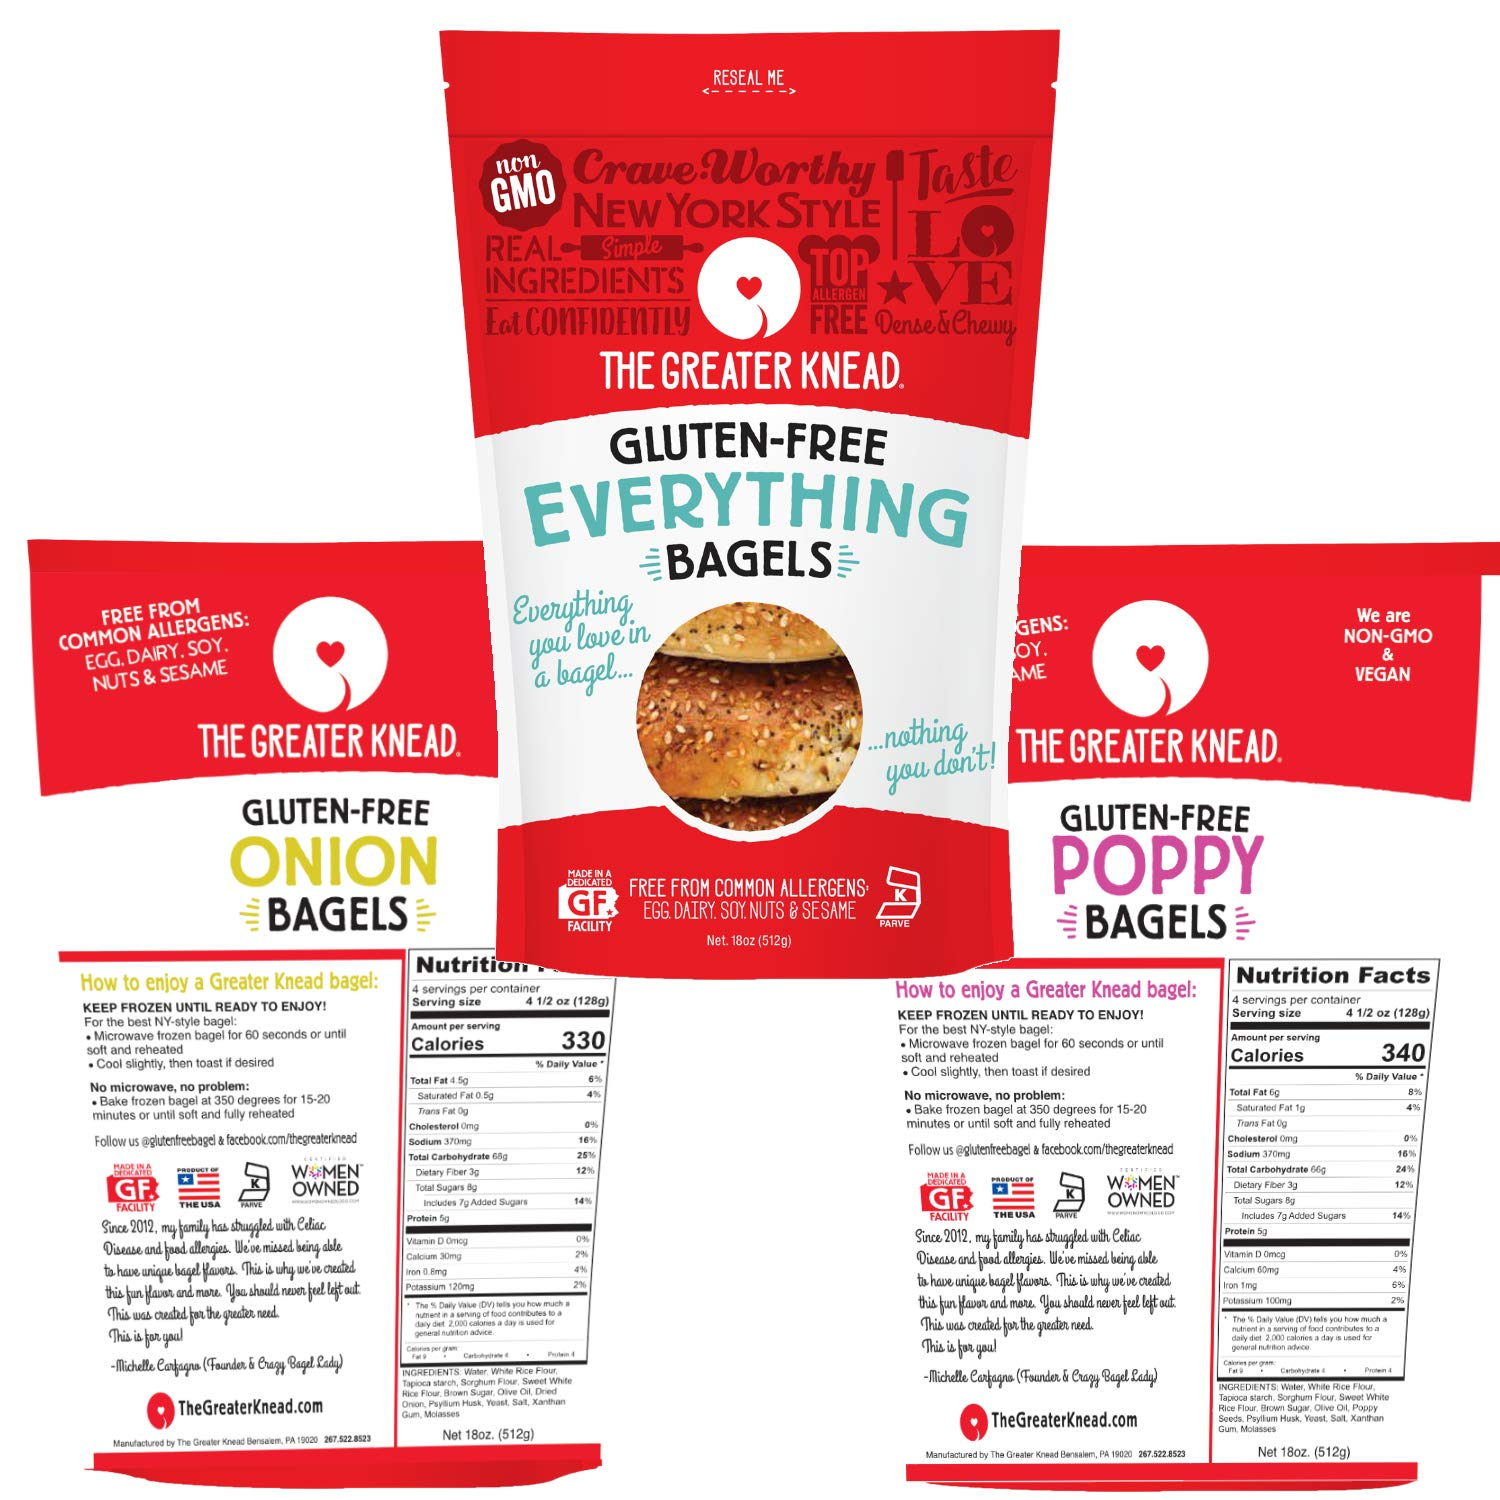 Greater Knead Gluten Free Bagel Savory Combo Pack - Poppy Seed, Onion & Everything - Vegan, non-GMO, Free of Wheat, Nuts, Soy, Peanuts, Tree Nuts (12 bagels) by The Greater Knead